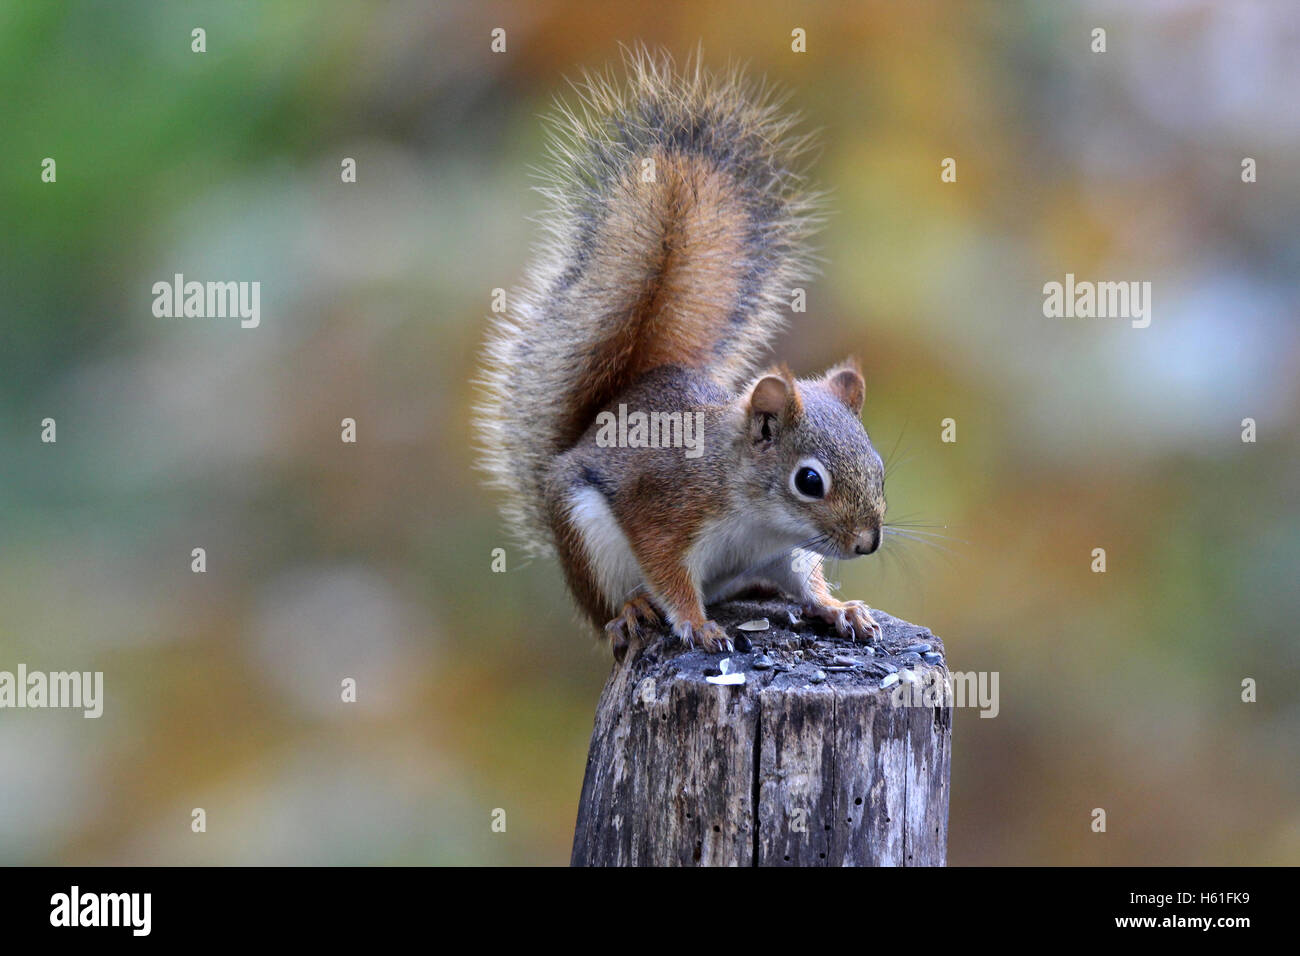 An American red squirrel (Tamiasciurus hudsonicus) sitting on a fence post in Fall - Stock Image